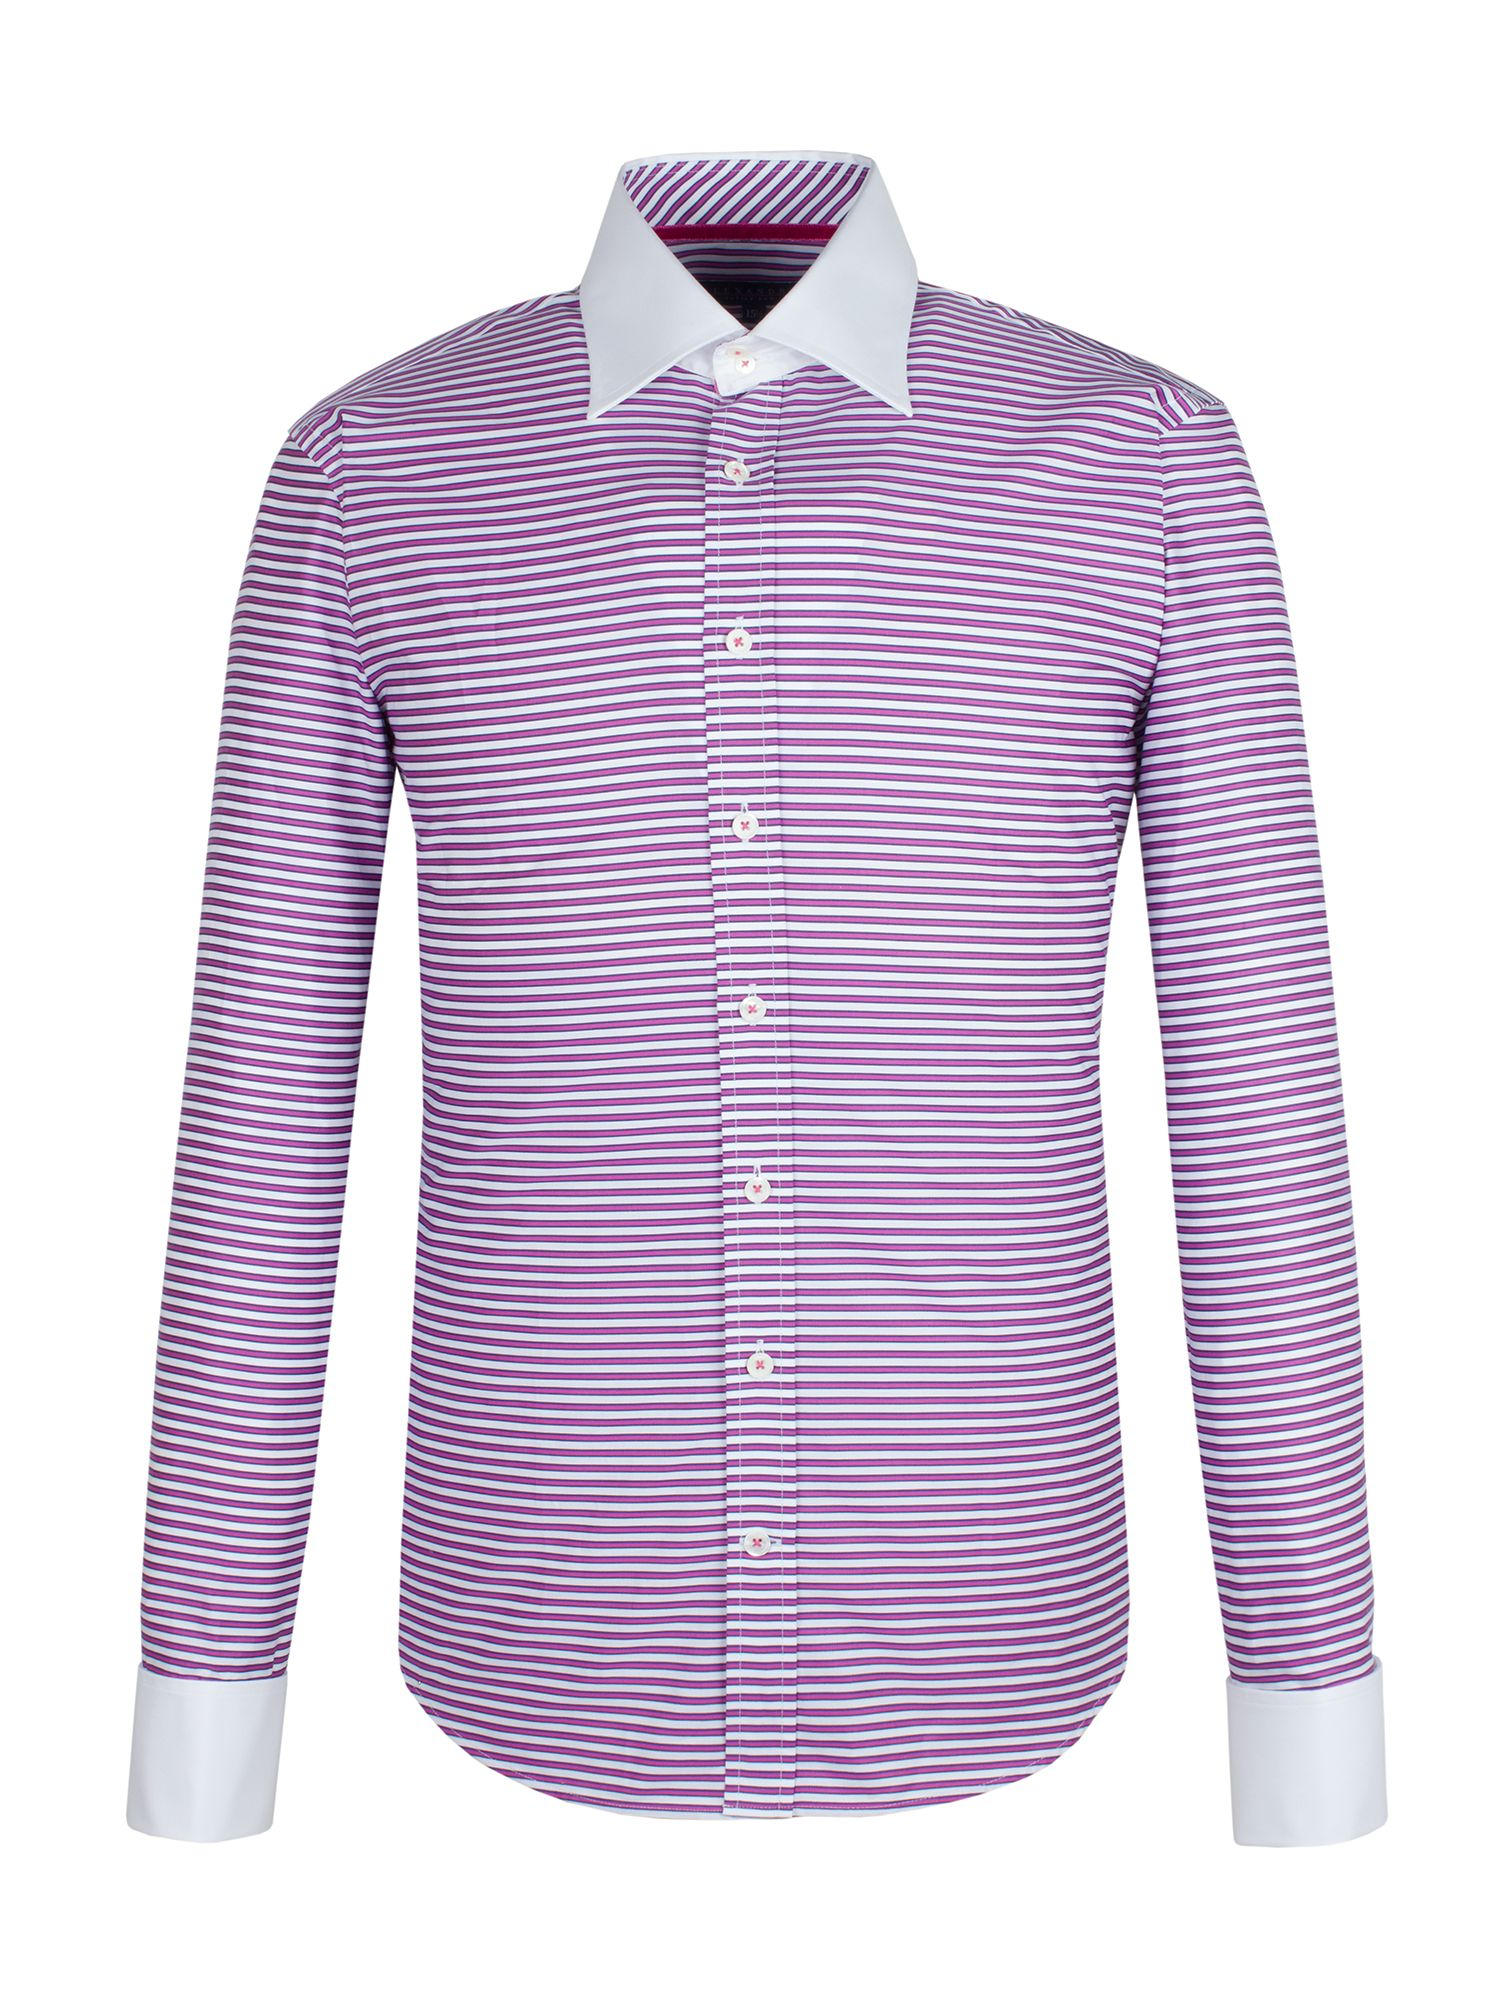 Pink bordered stripe tailored shirt